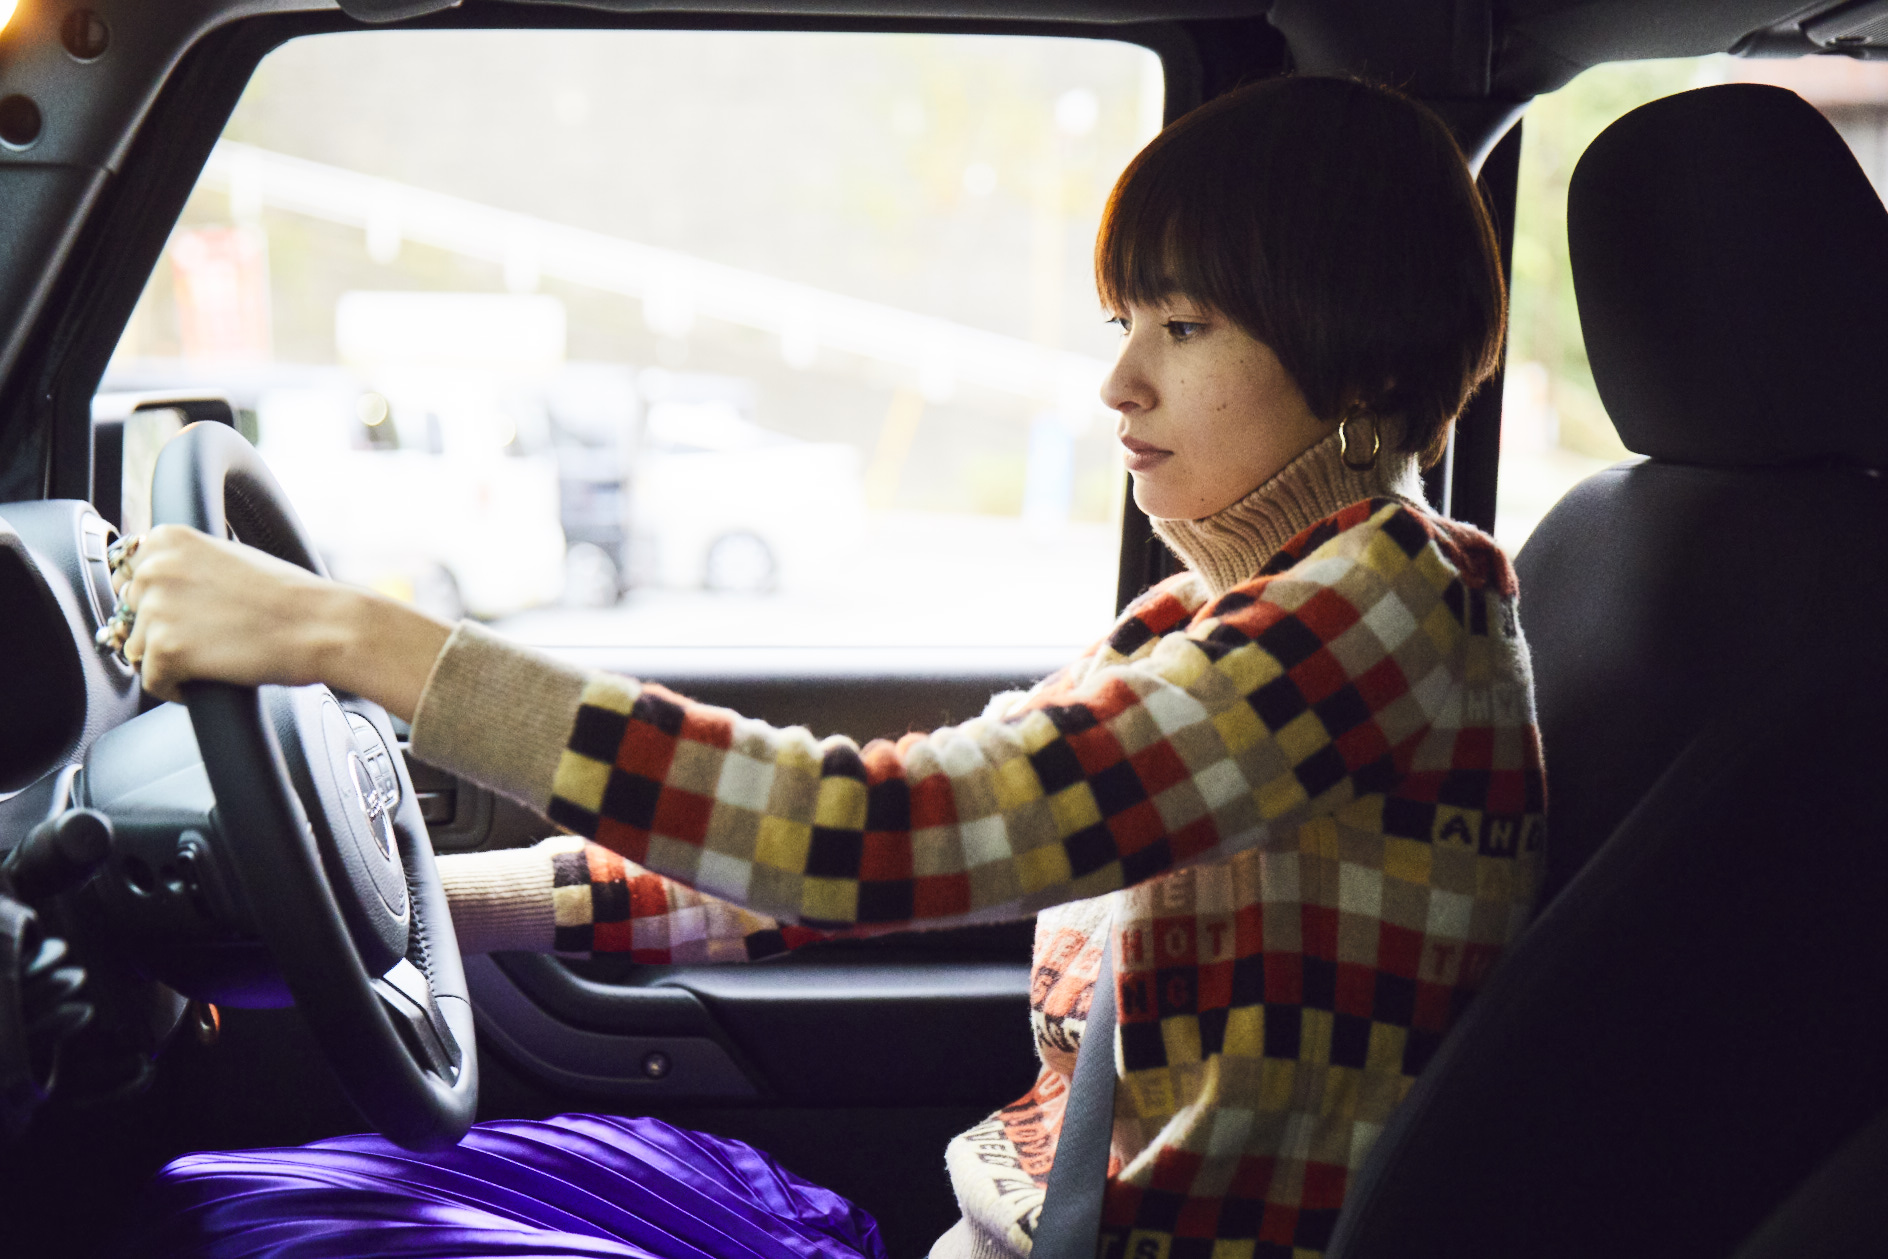 ho_104894 My Jeep®,My Life. ボクとJeep®の暮らしかた。女優・太田莉菜